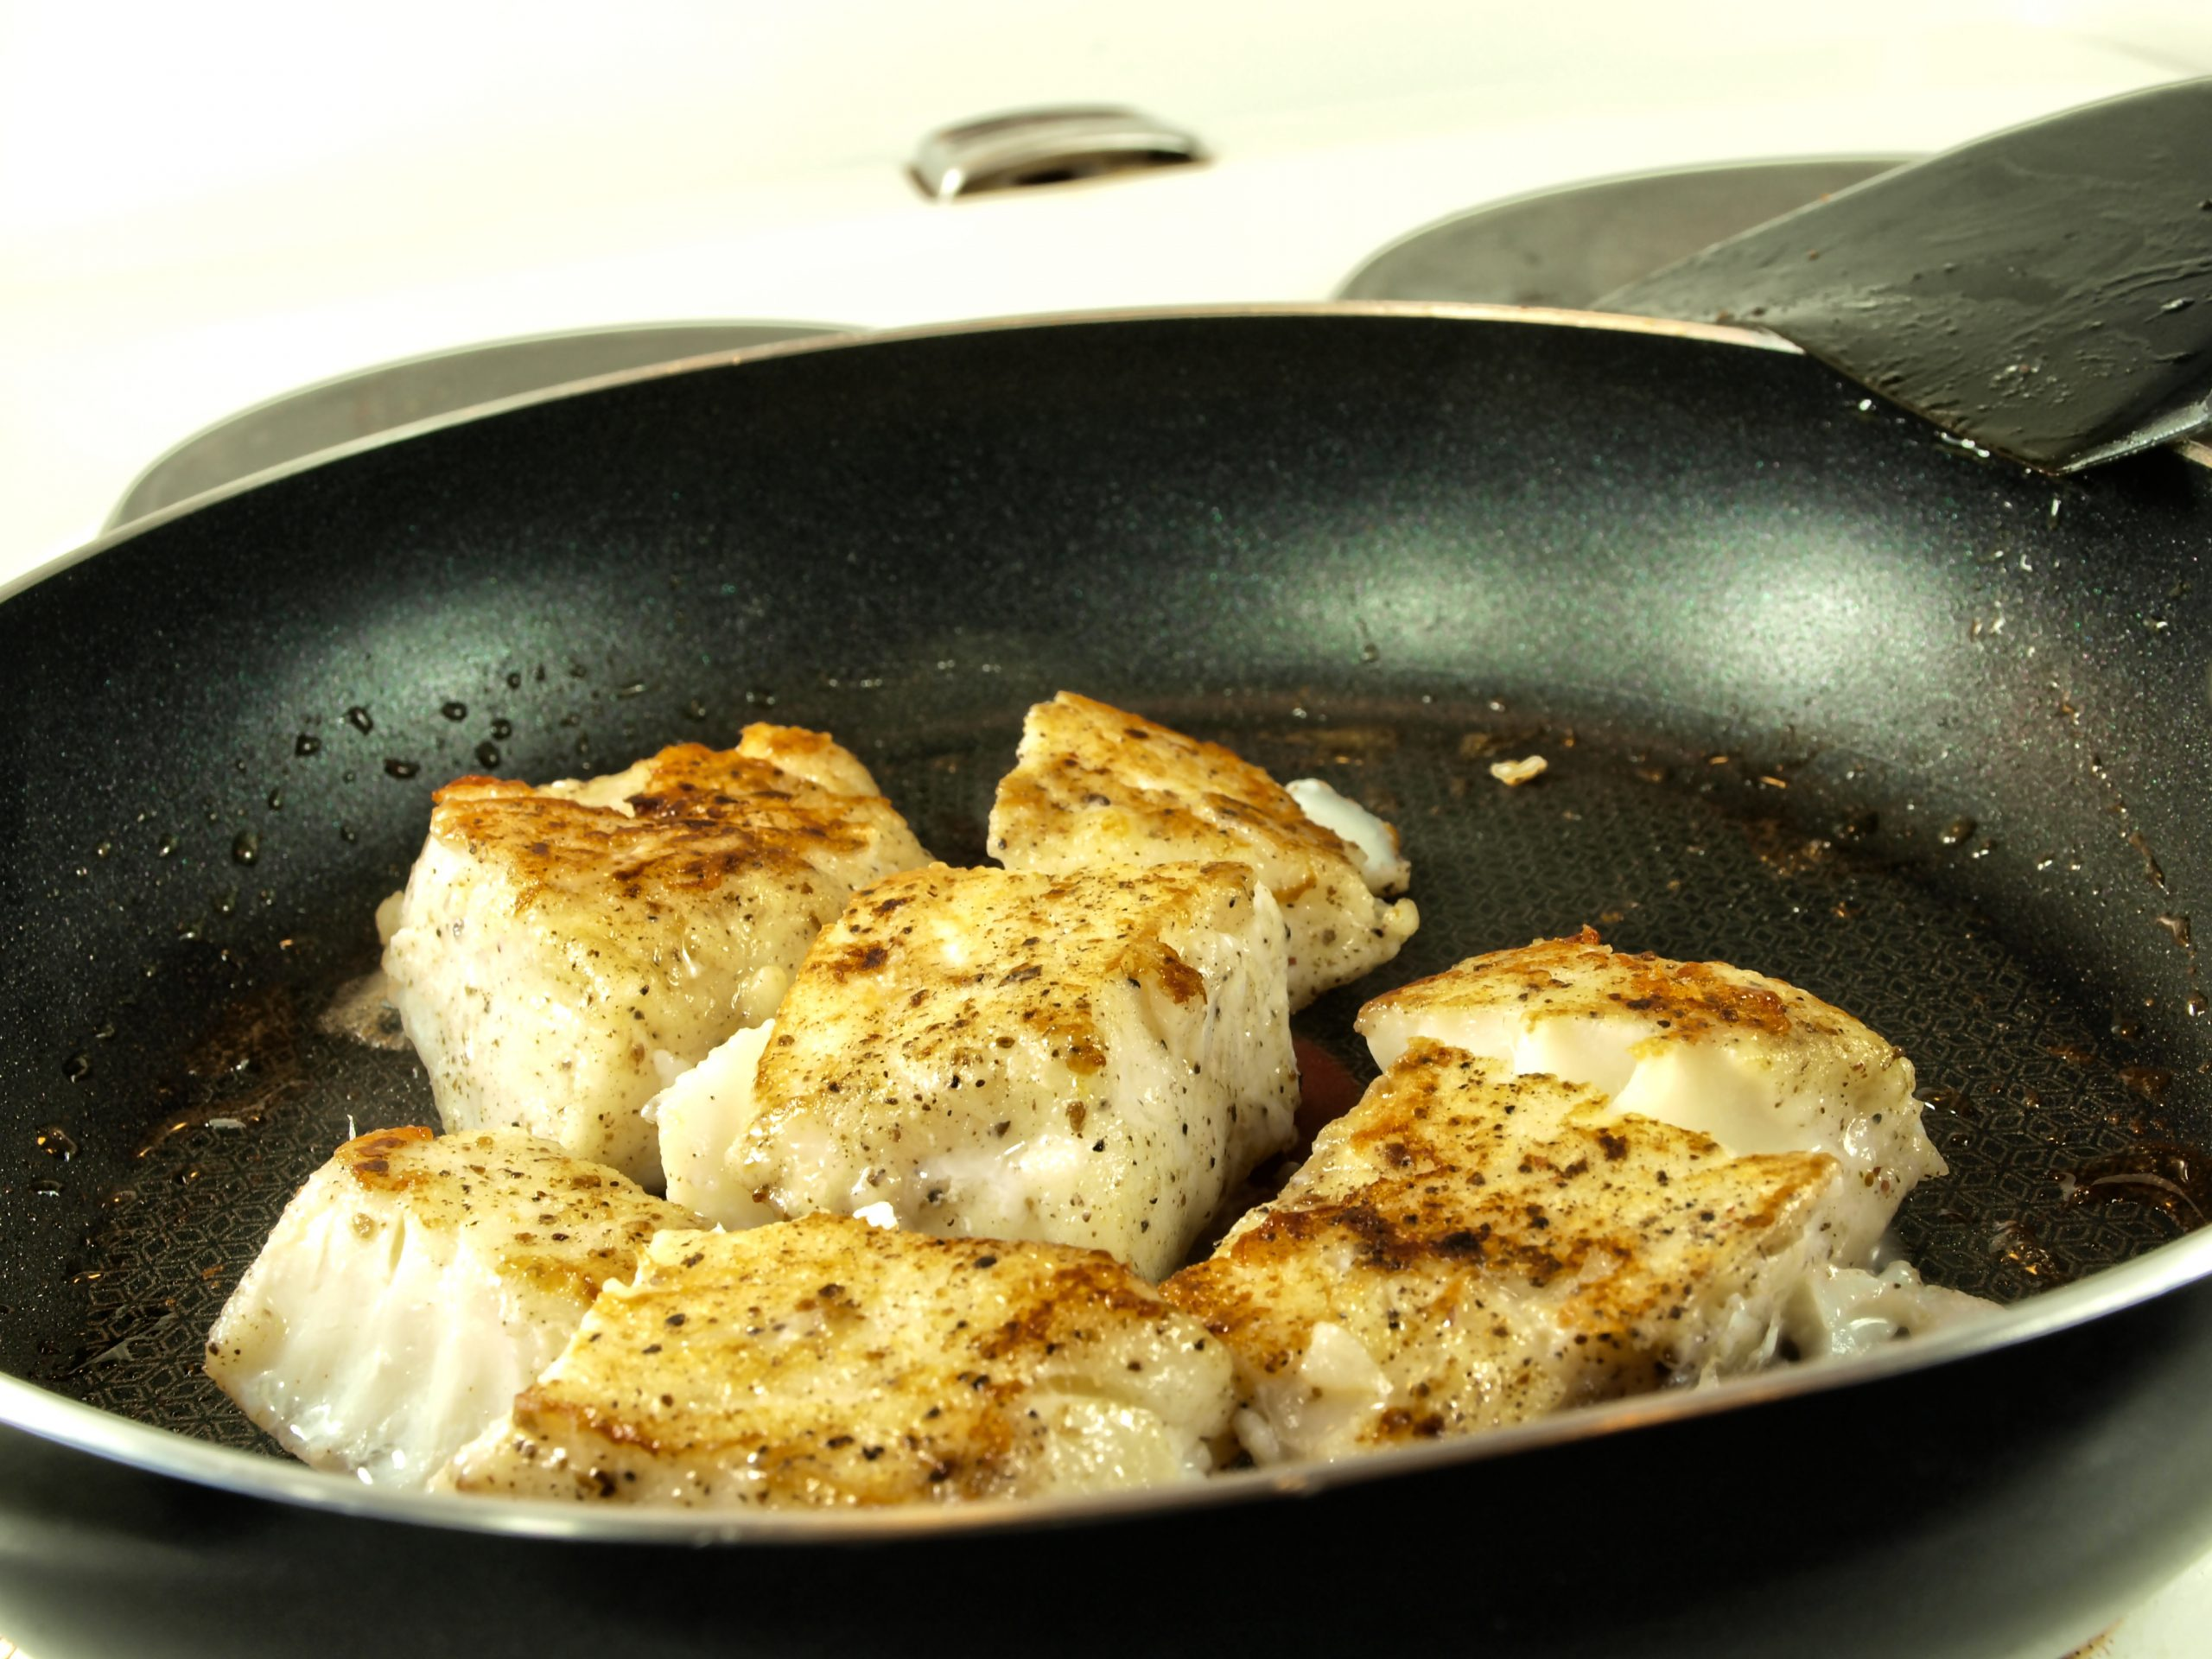 BUTTERED COD FILETS